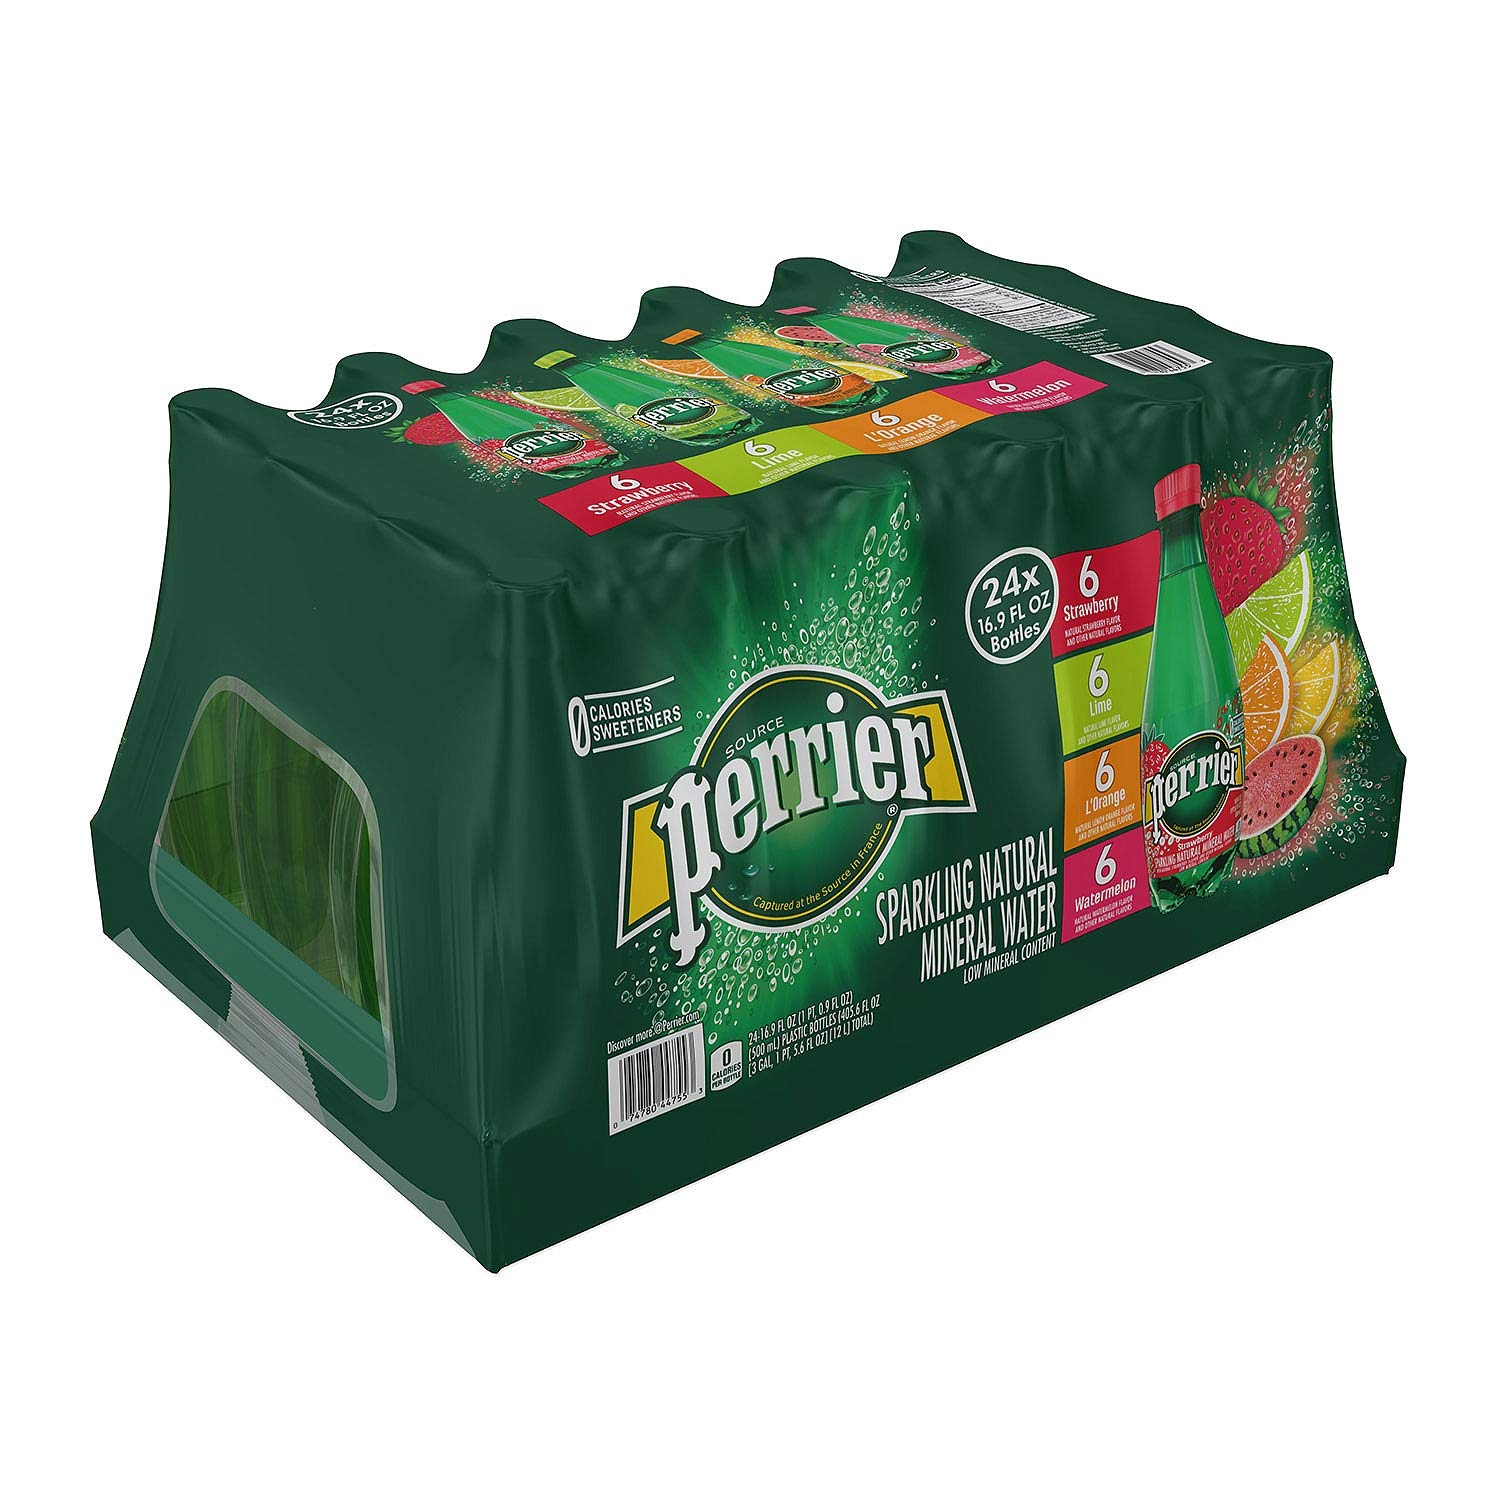 Perrier Sparkling Natural Mineral Water, Assorted Flavors (16.9 oz, 24 pk.) by Perrier (Image #2)